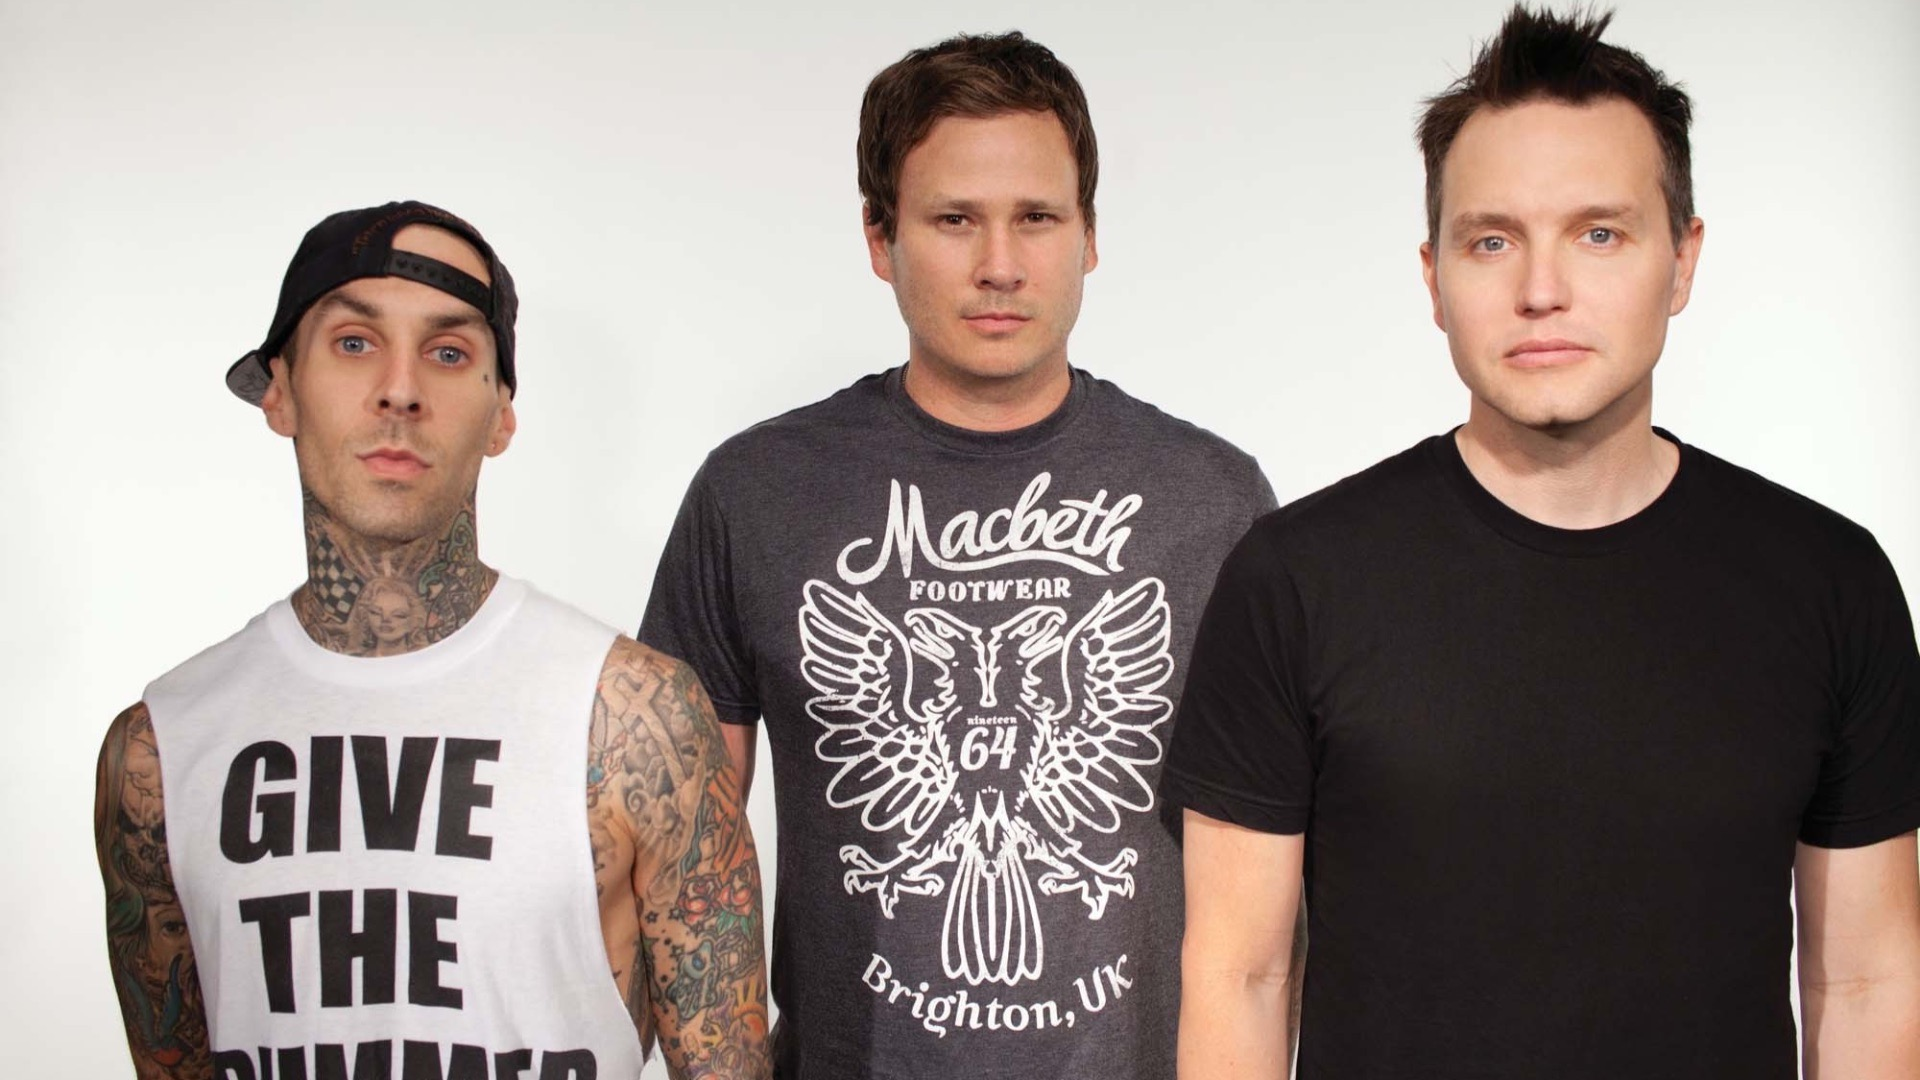 The old Blink 182 lineup